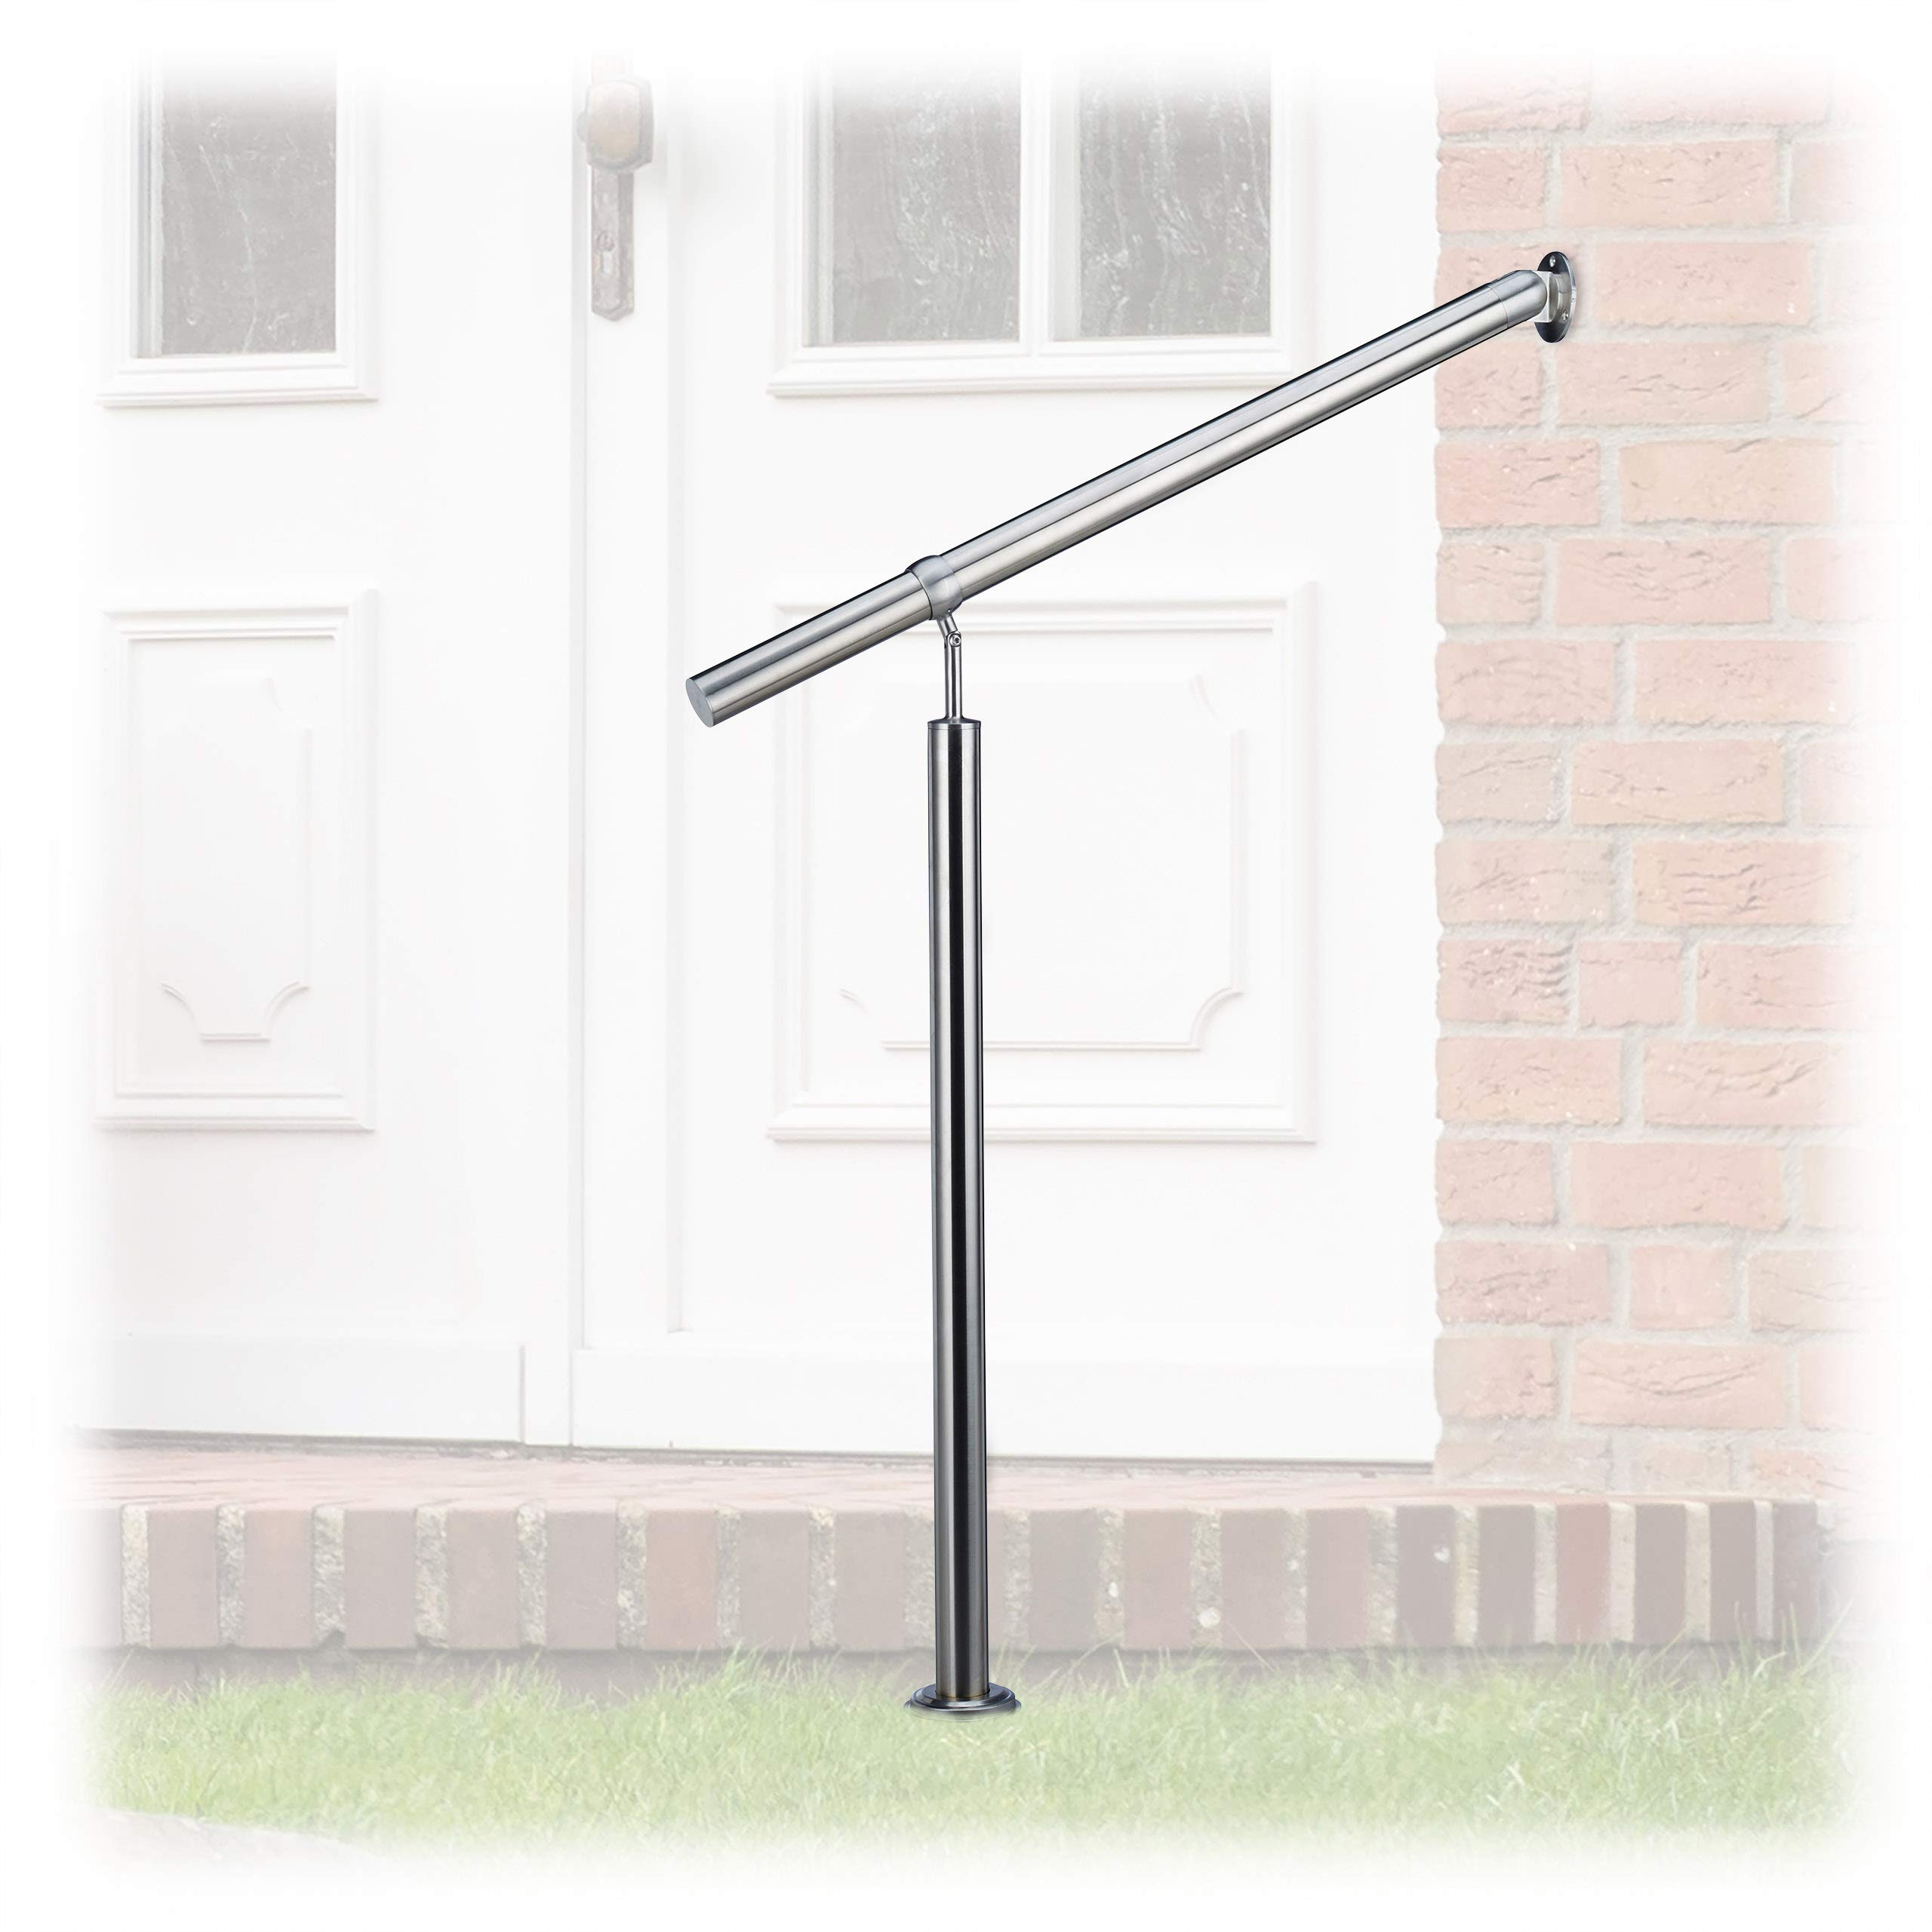 Relaxdays Stainless Steel Handrail for in-and Outdoor Use, with Wall Fittings and Metal Plugs, Silver, 80 x 90 cm by Relaxdays